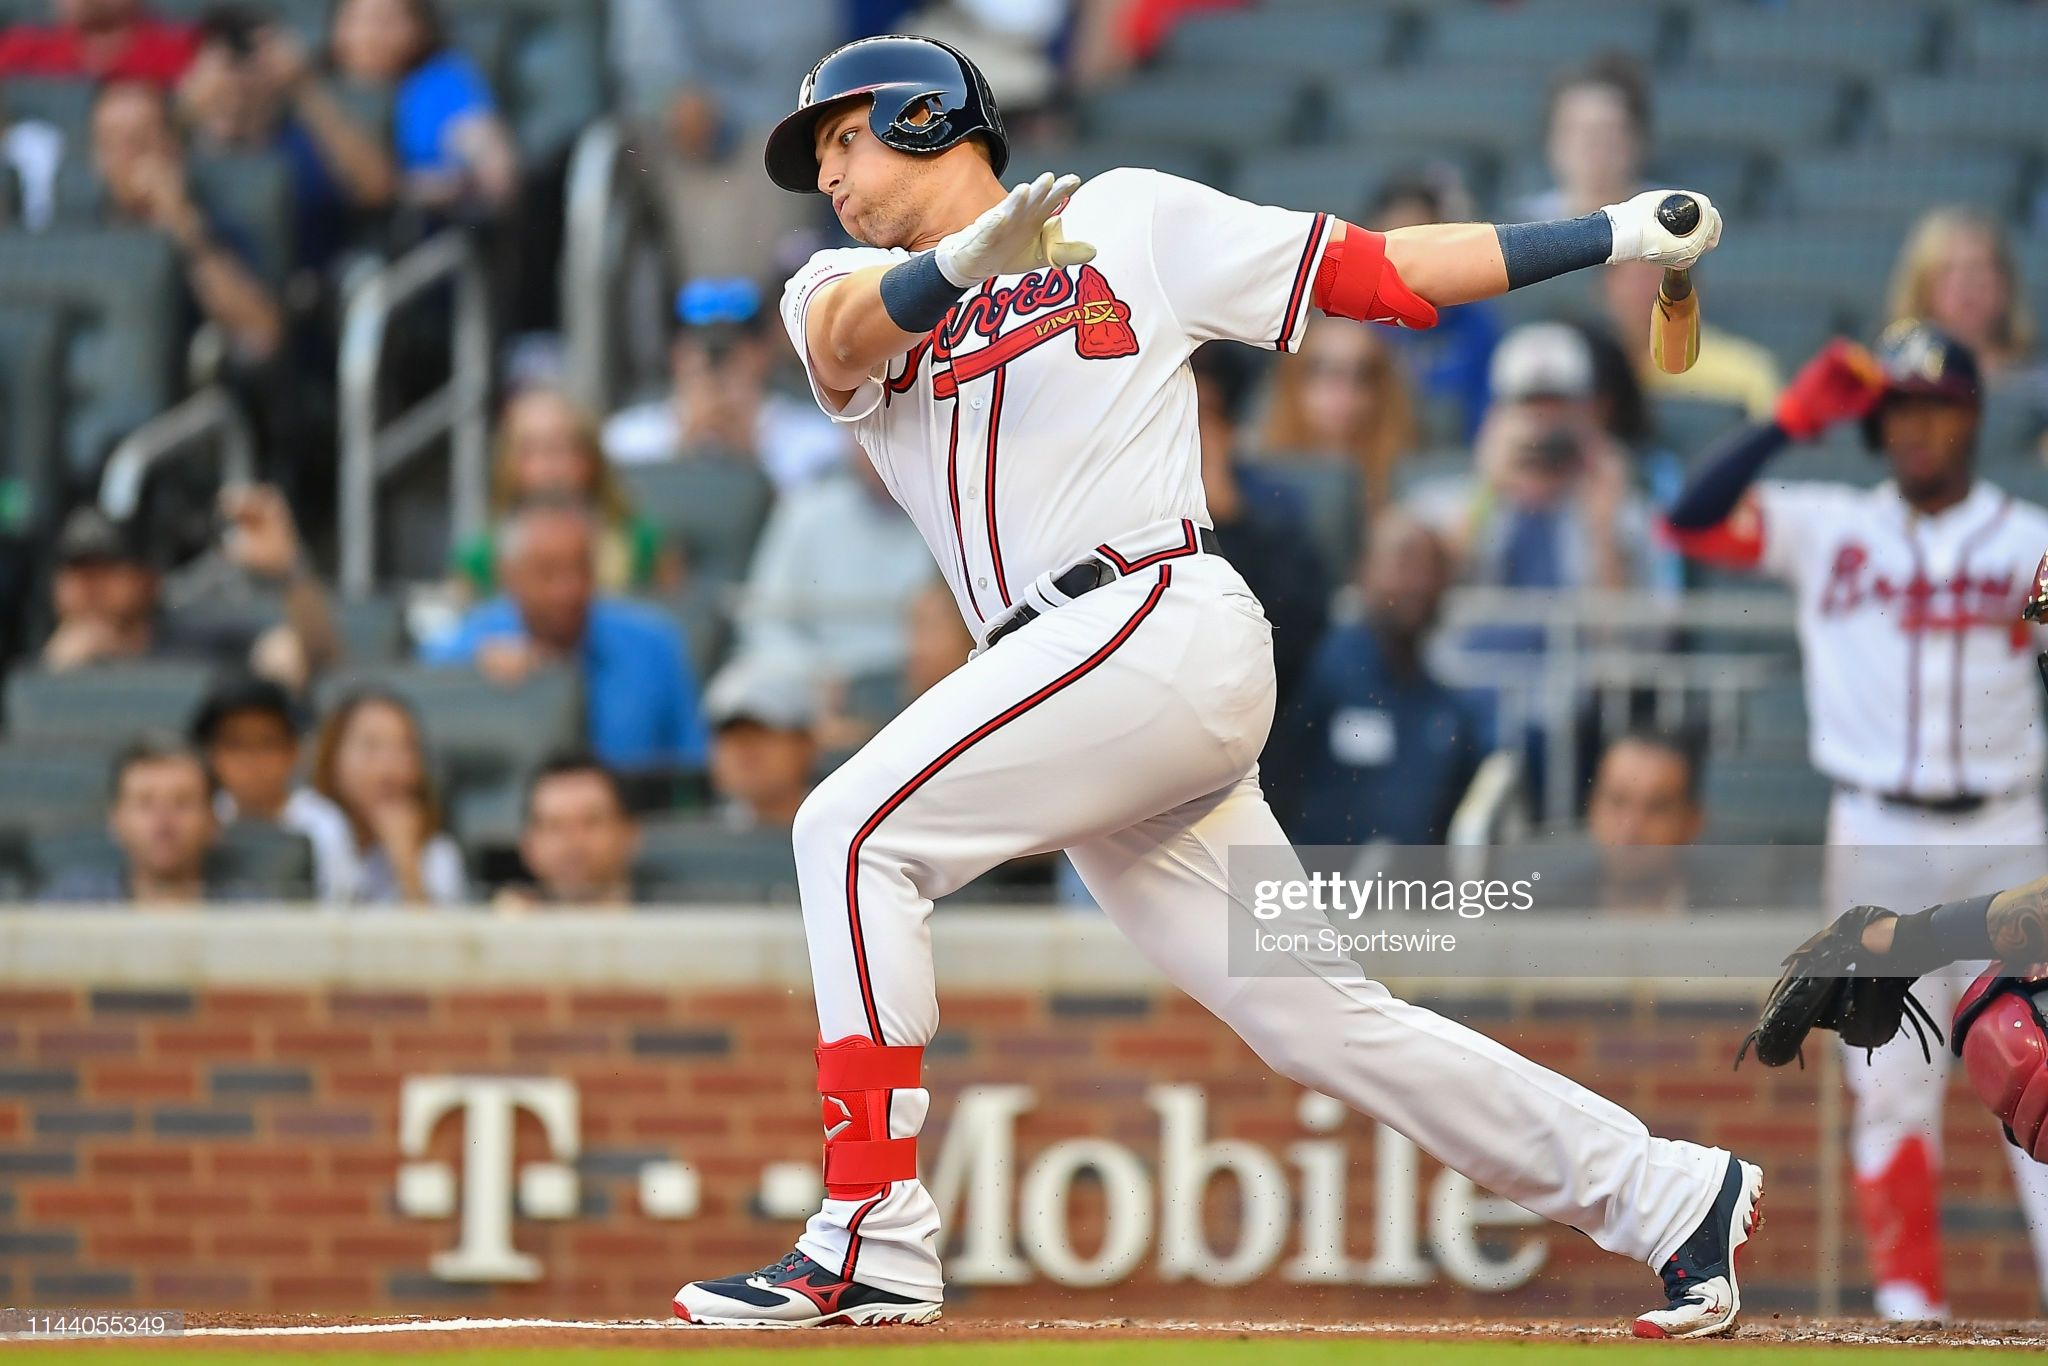 Atlanta Braves Rookie Outfielder Austin Riley Gets His First At Bat Atlanta Braves Braves The Outfield